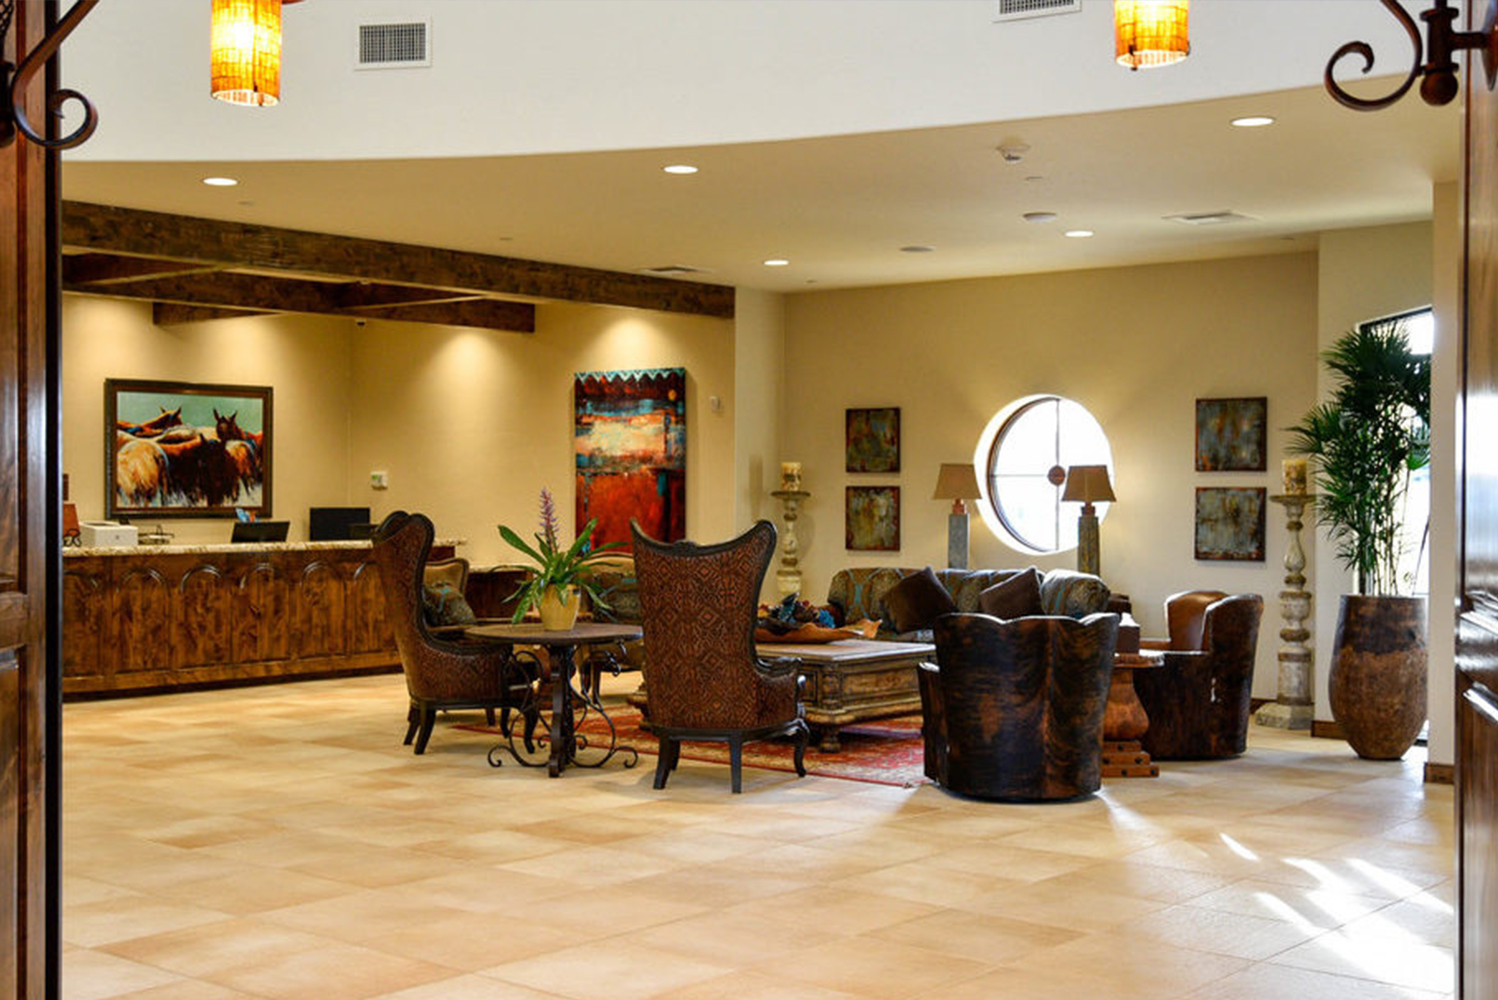 Upon arrival, guests are welcomed by Spanish Hacienda style architecture that pays homage to California's heritage.